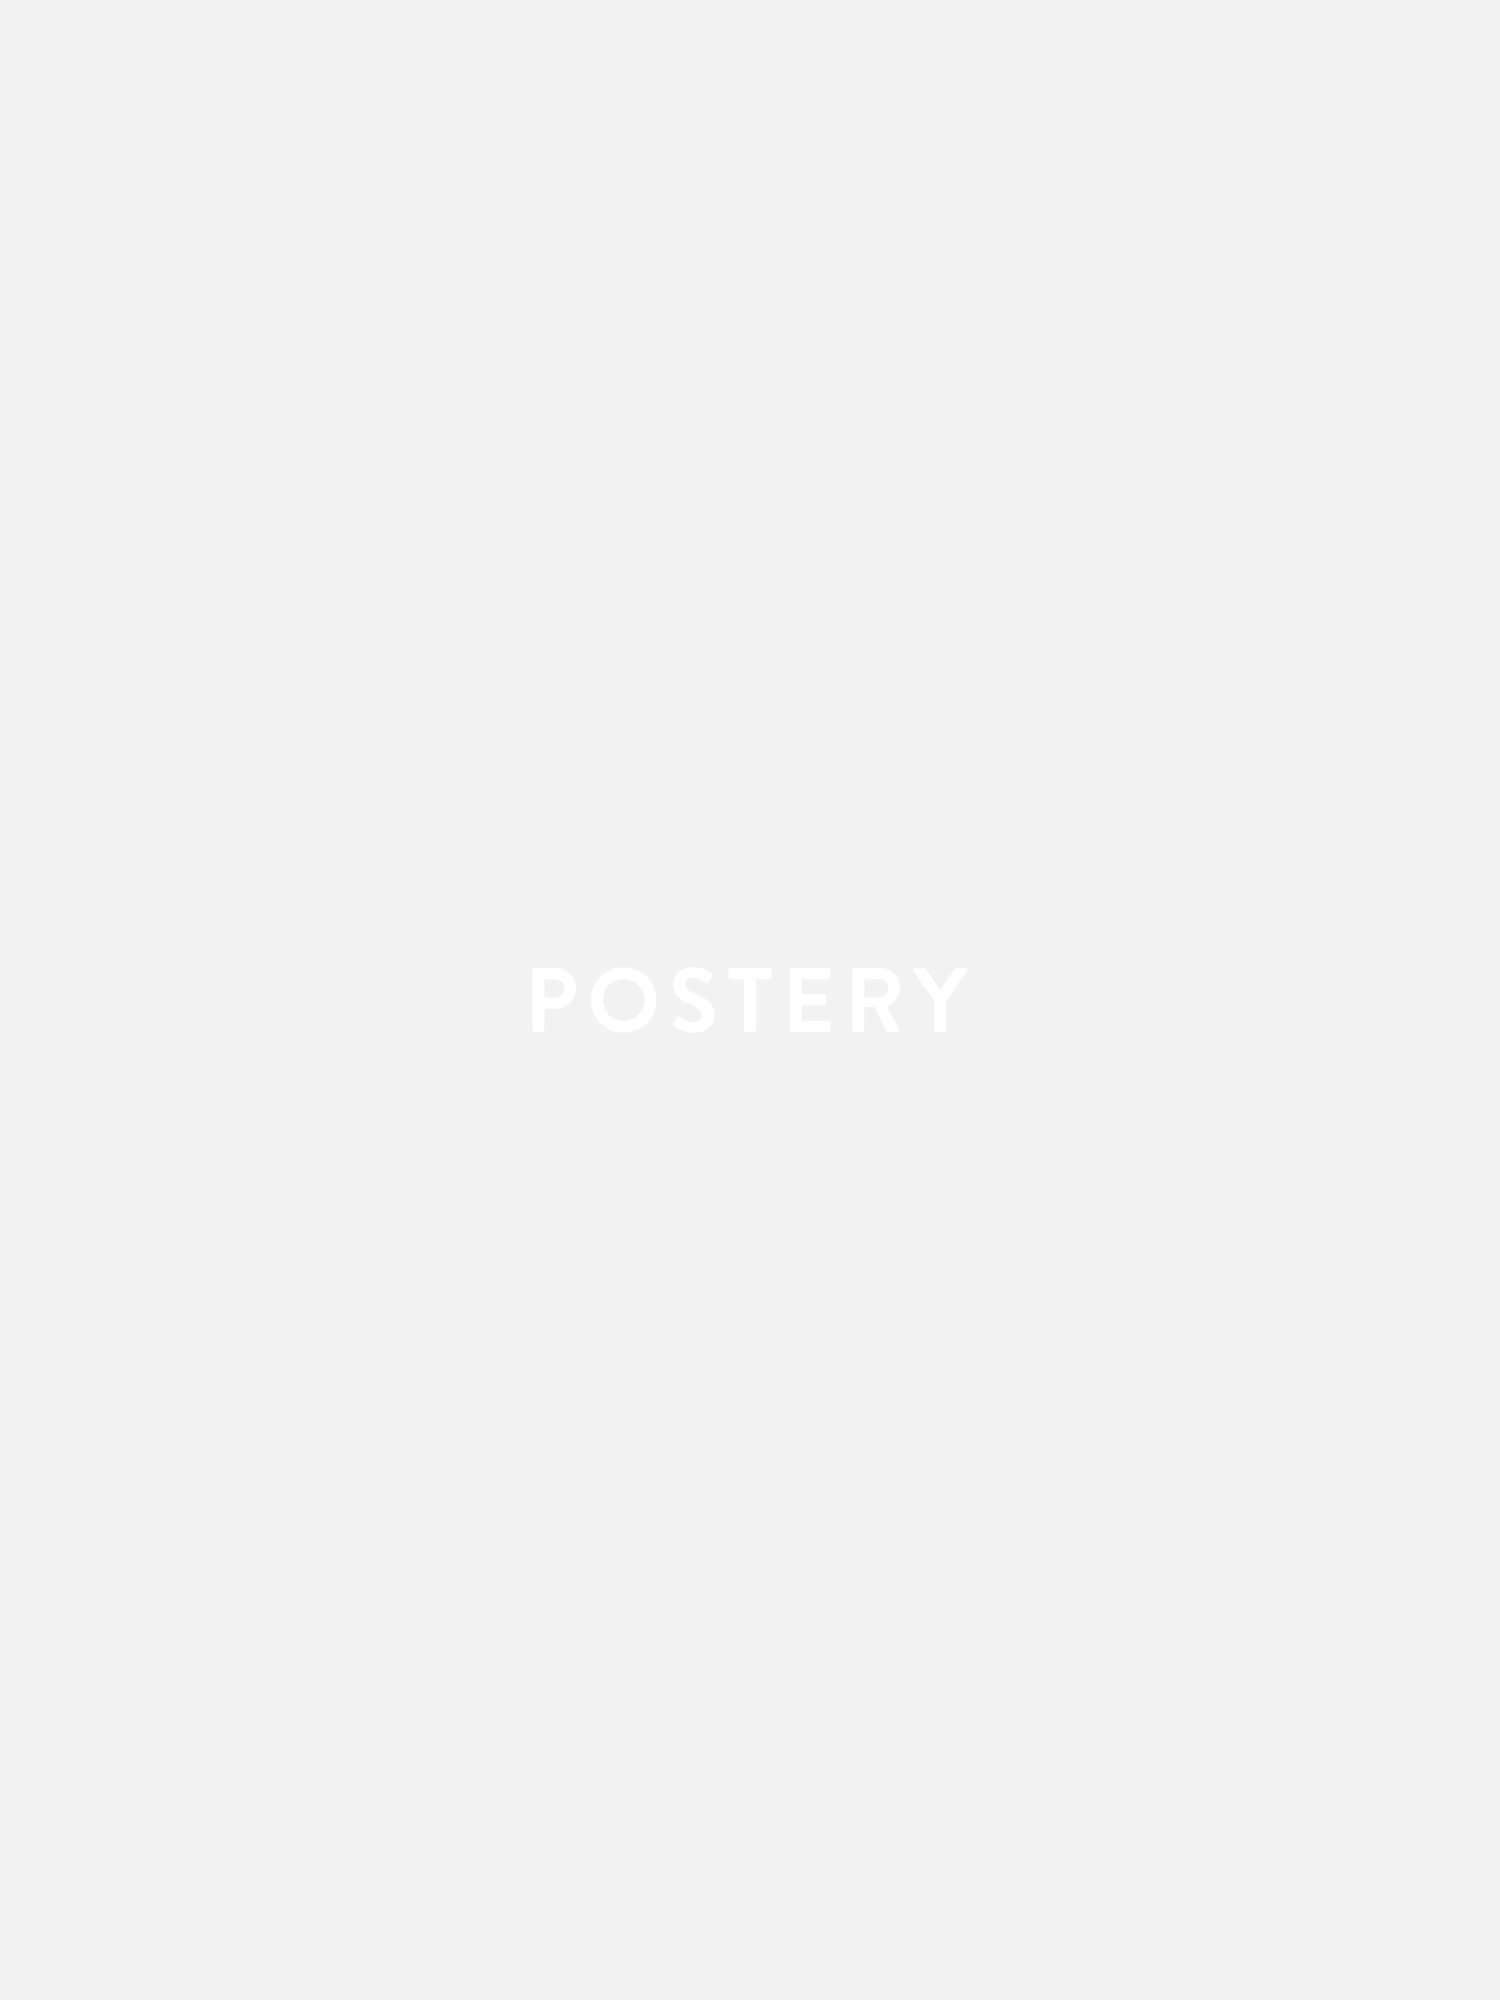 Waffles with Blueberries Poster